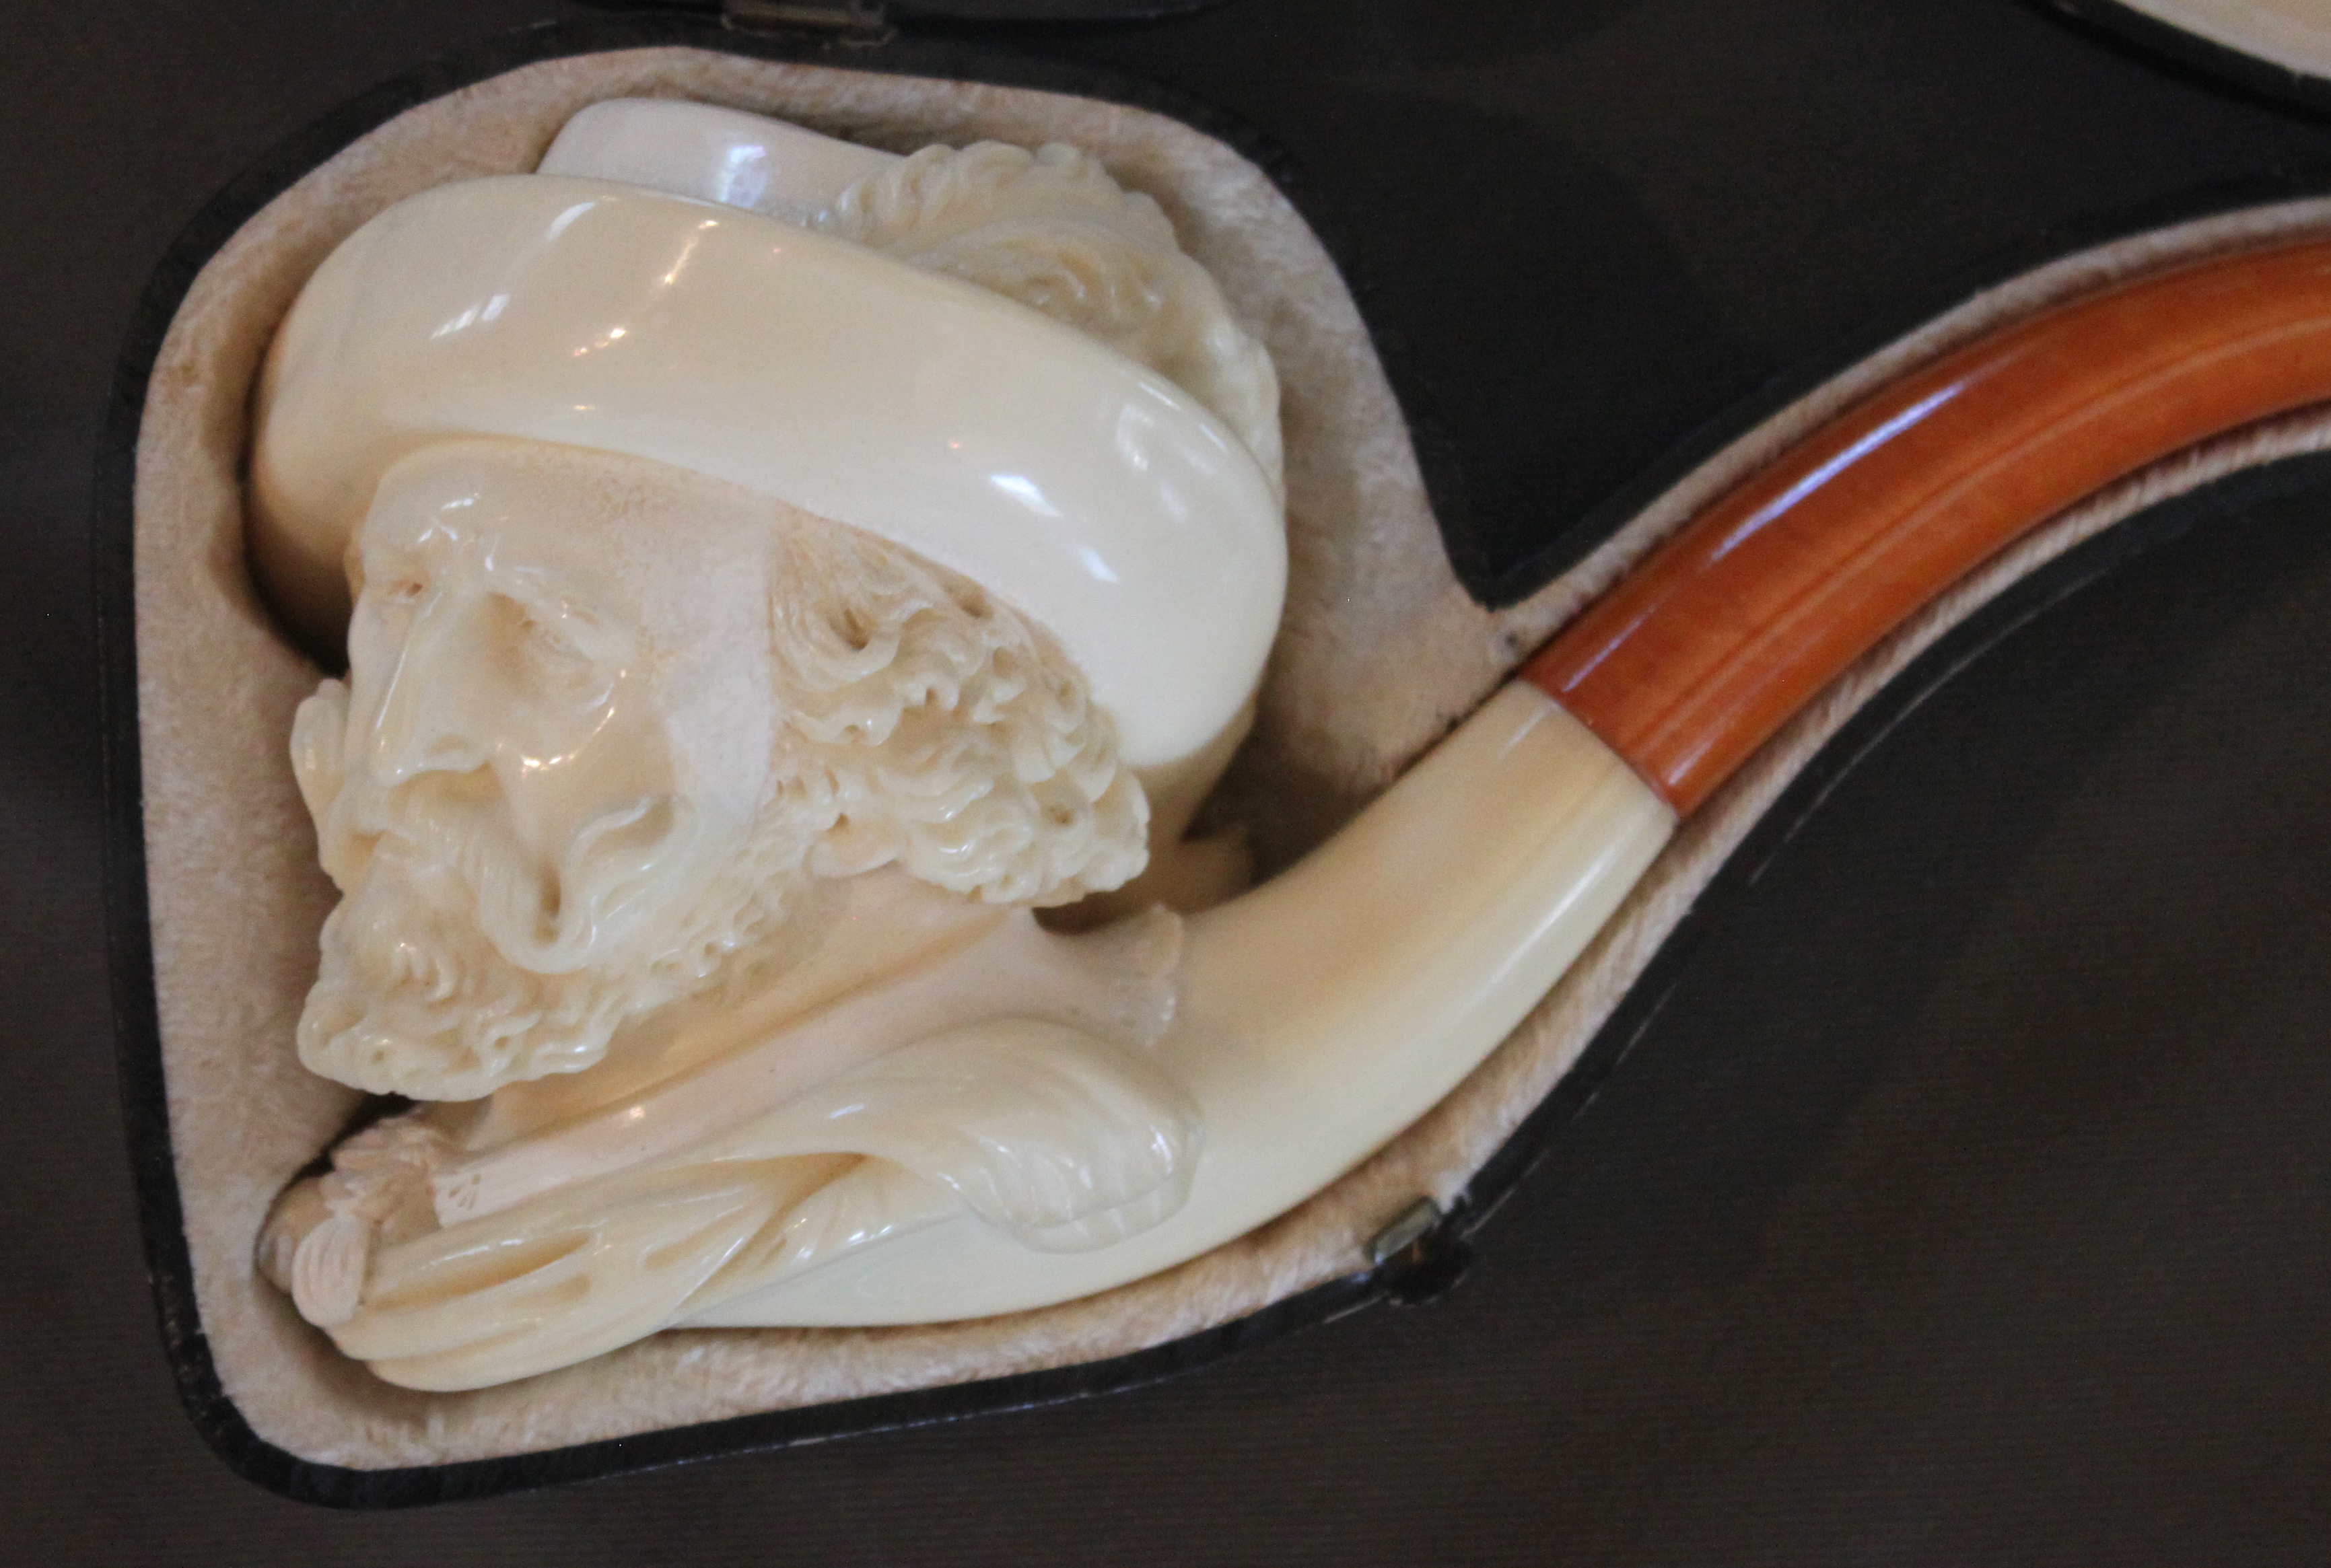 The mineral sepiolite, makes the two meerschaum pipes depicting the likenesses of Peter Paul Ruben and Sire Anthony Van Dyke. Meerschaum can be both carved and polished and the pipes are usually created underwater to maintain the minerals pliability. During the Victorian era, these status symbols were often carved images from history, literature and art but soon gave way to the new look of Art Deco after WWI.